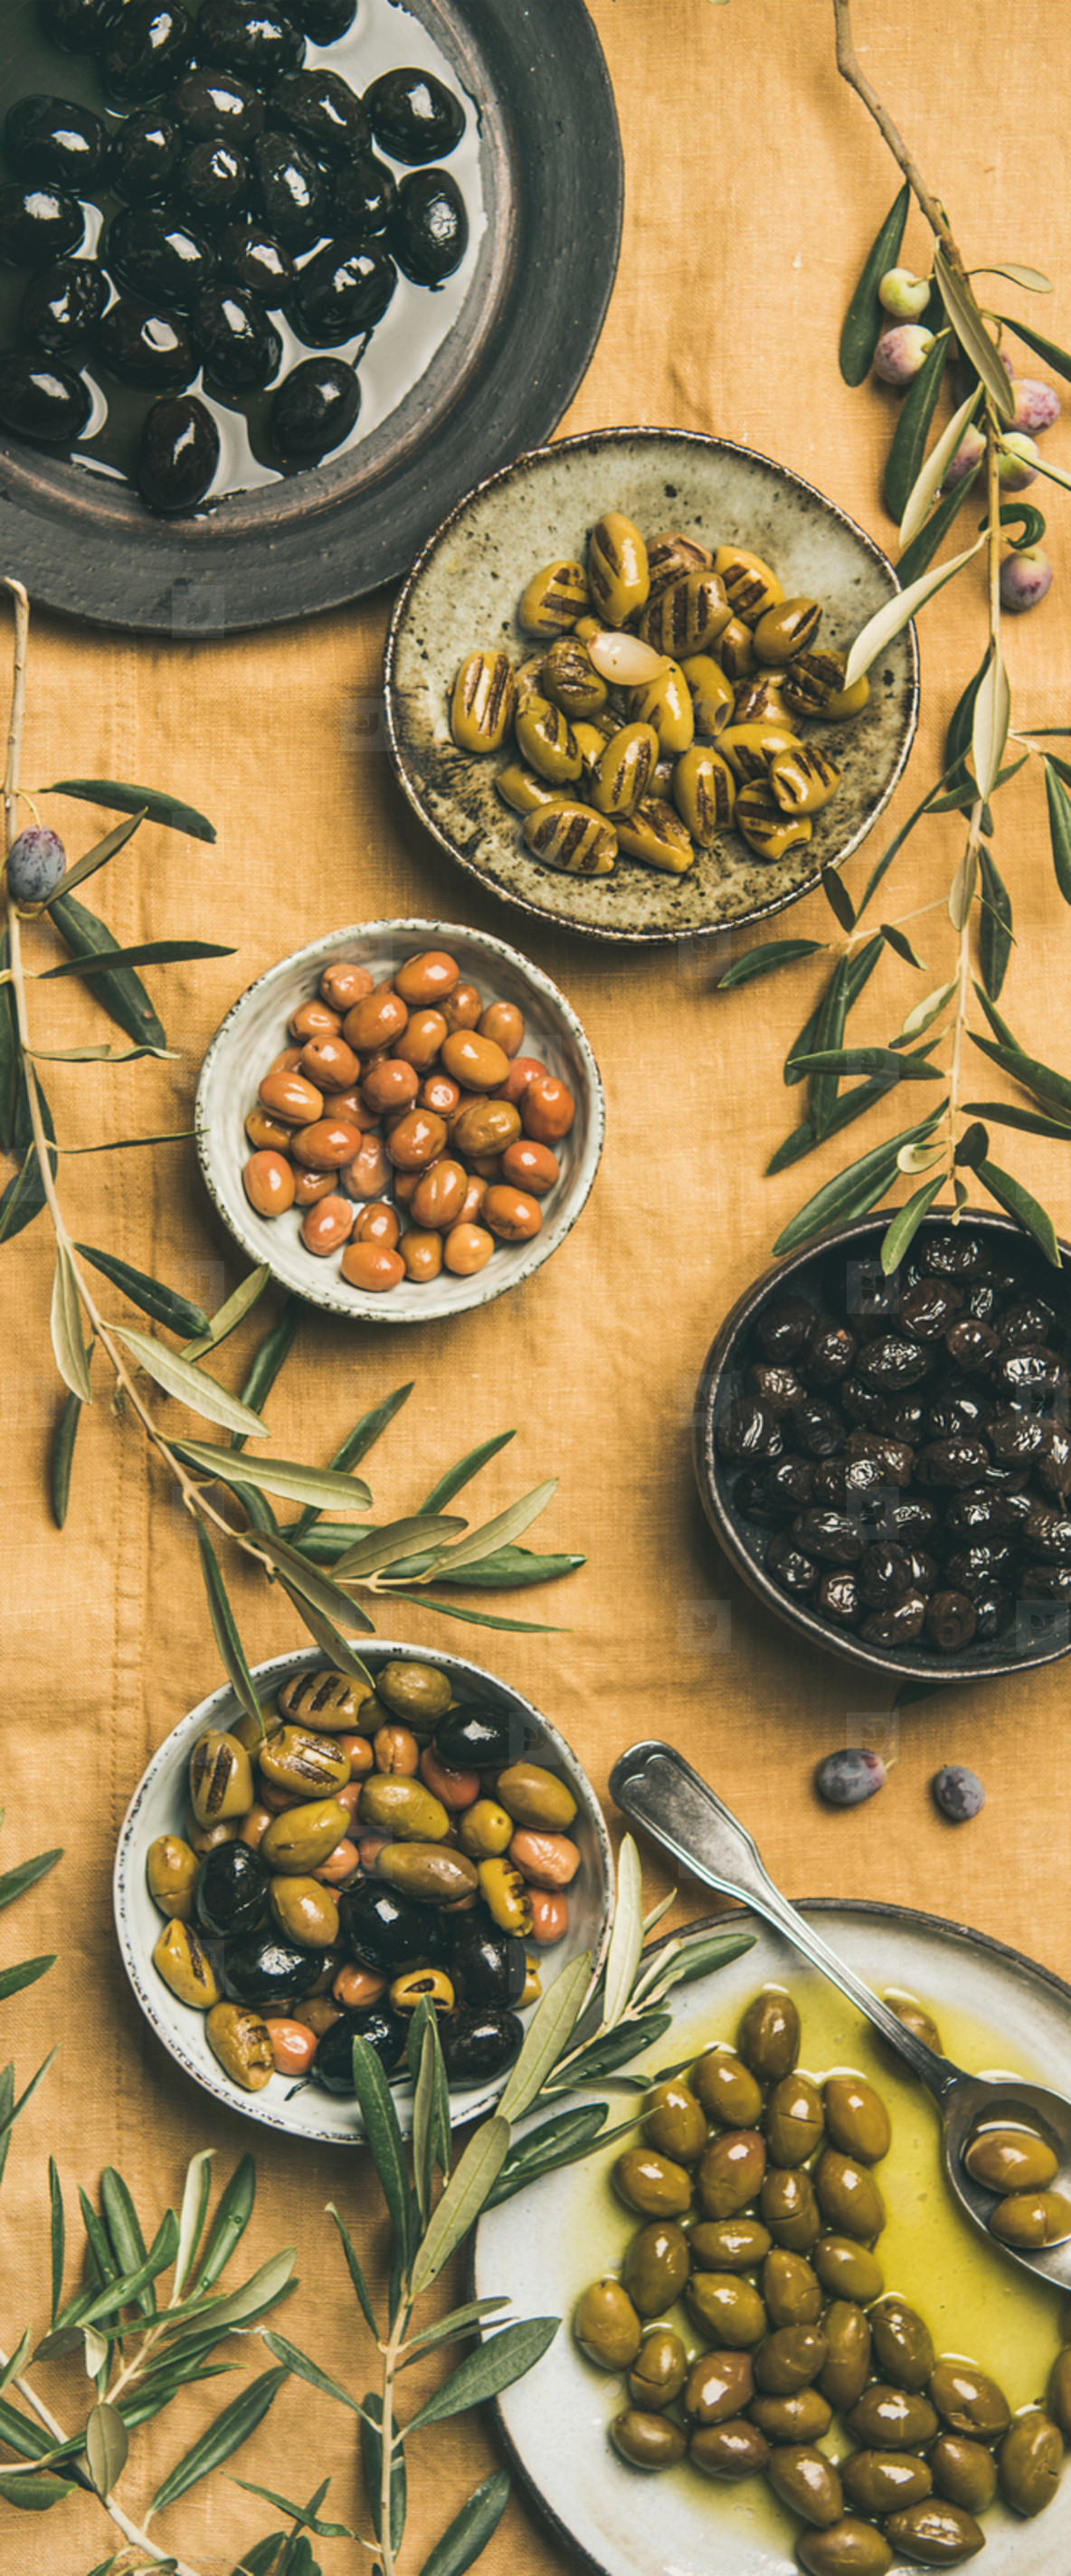 Mediterranean pickled olives and olive tree branches  yellow background